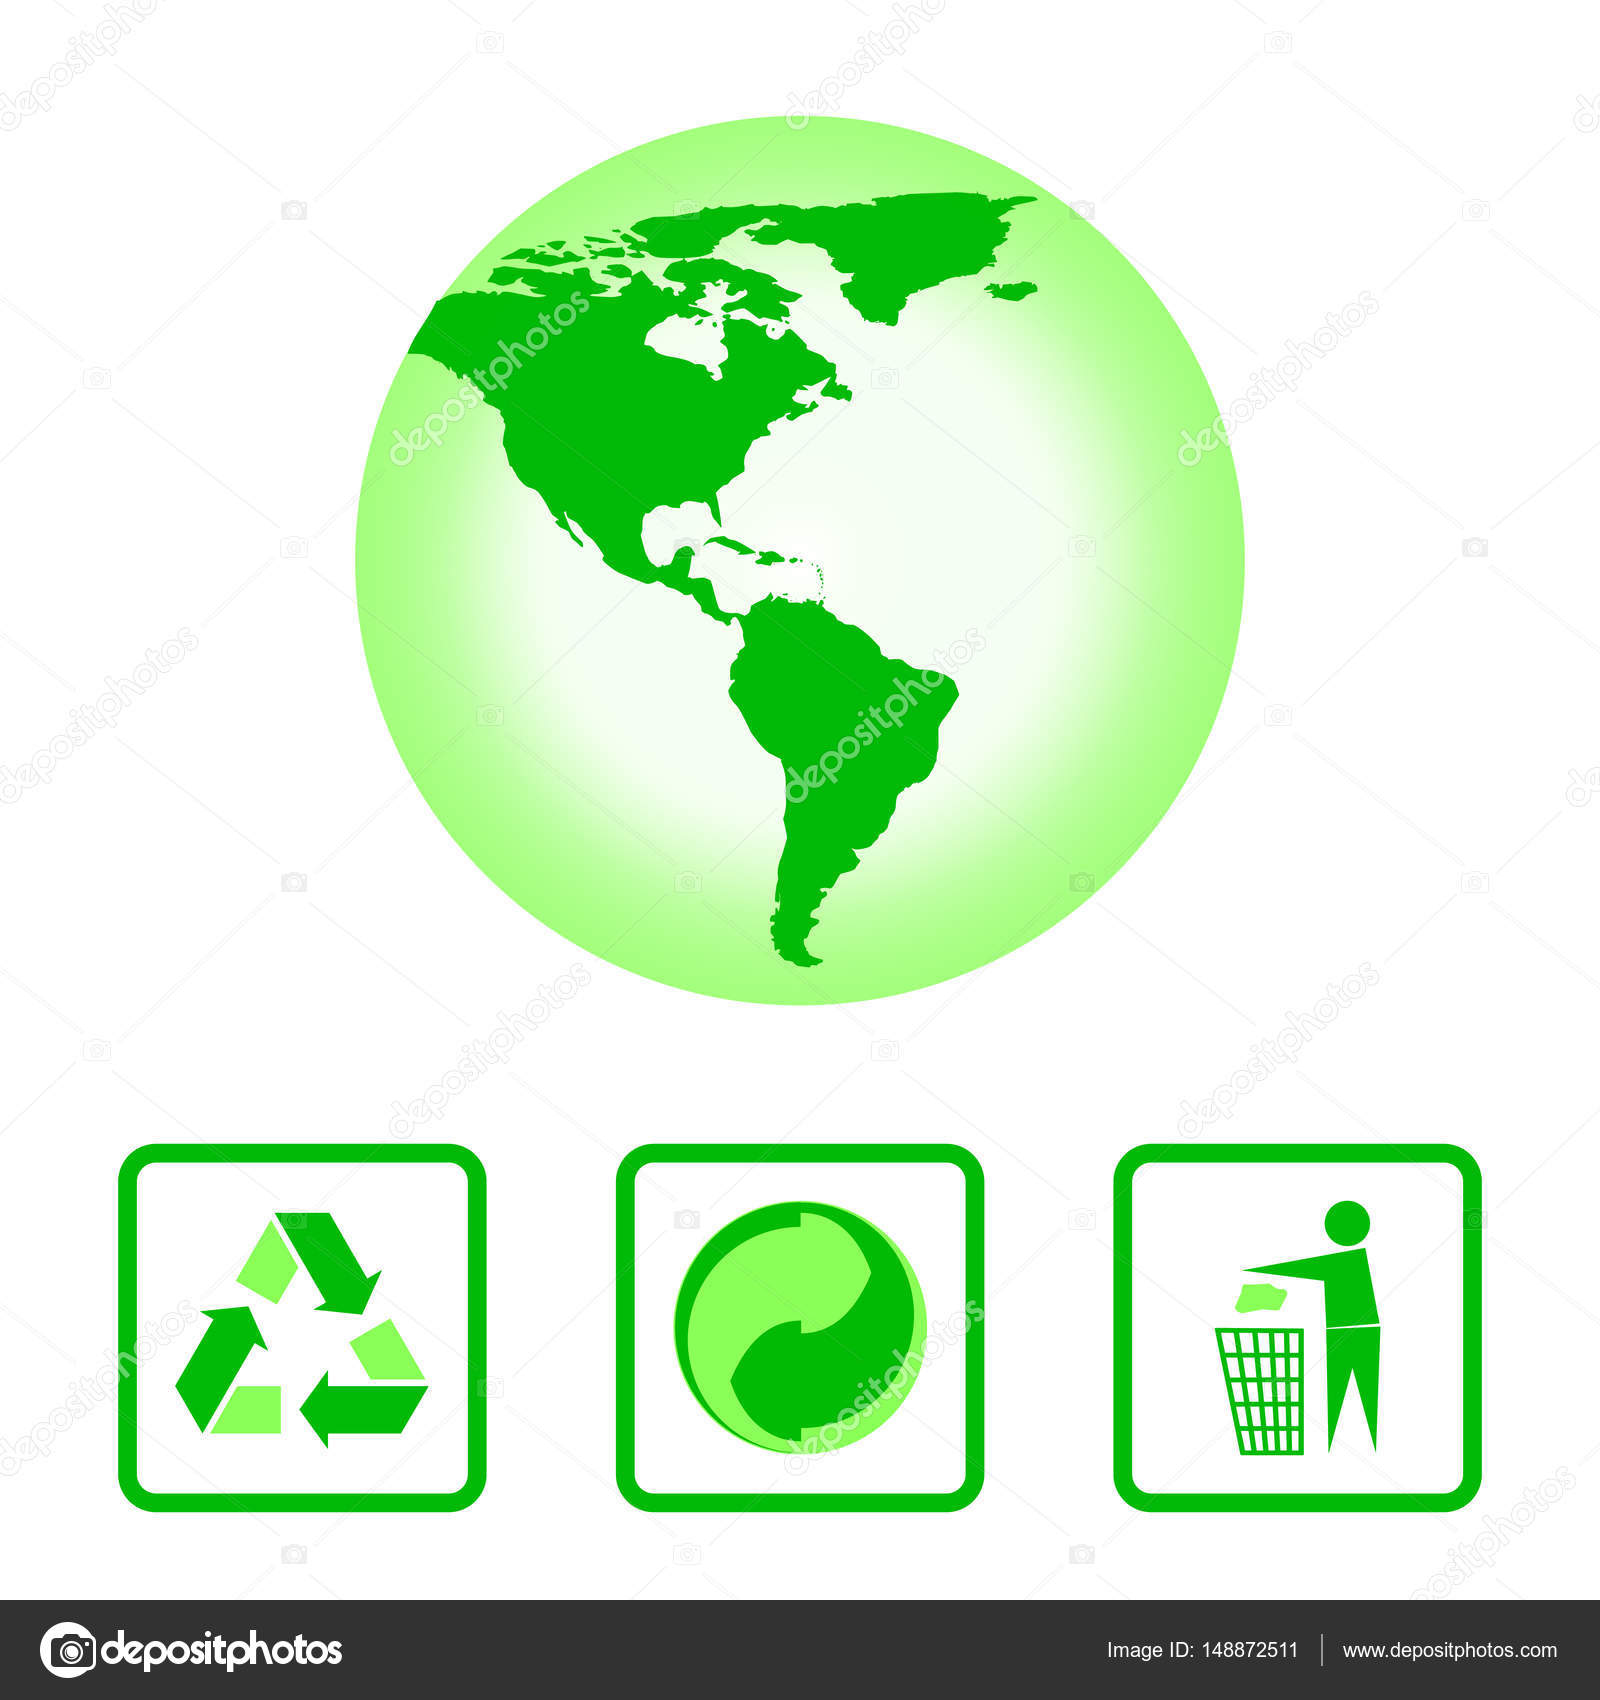 The International Recycling Symbols And The Map Of The Western